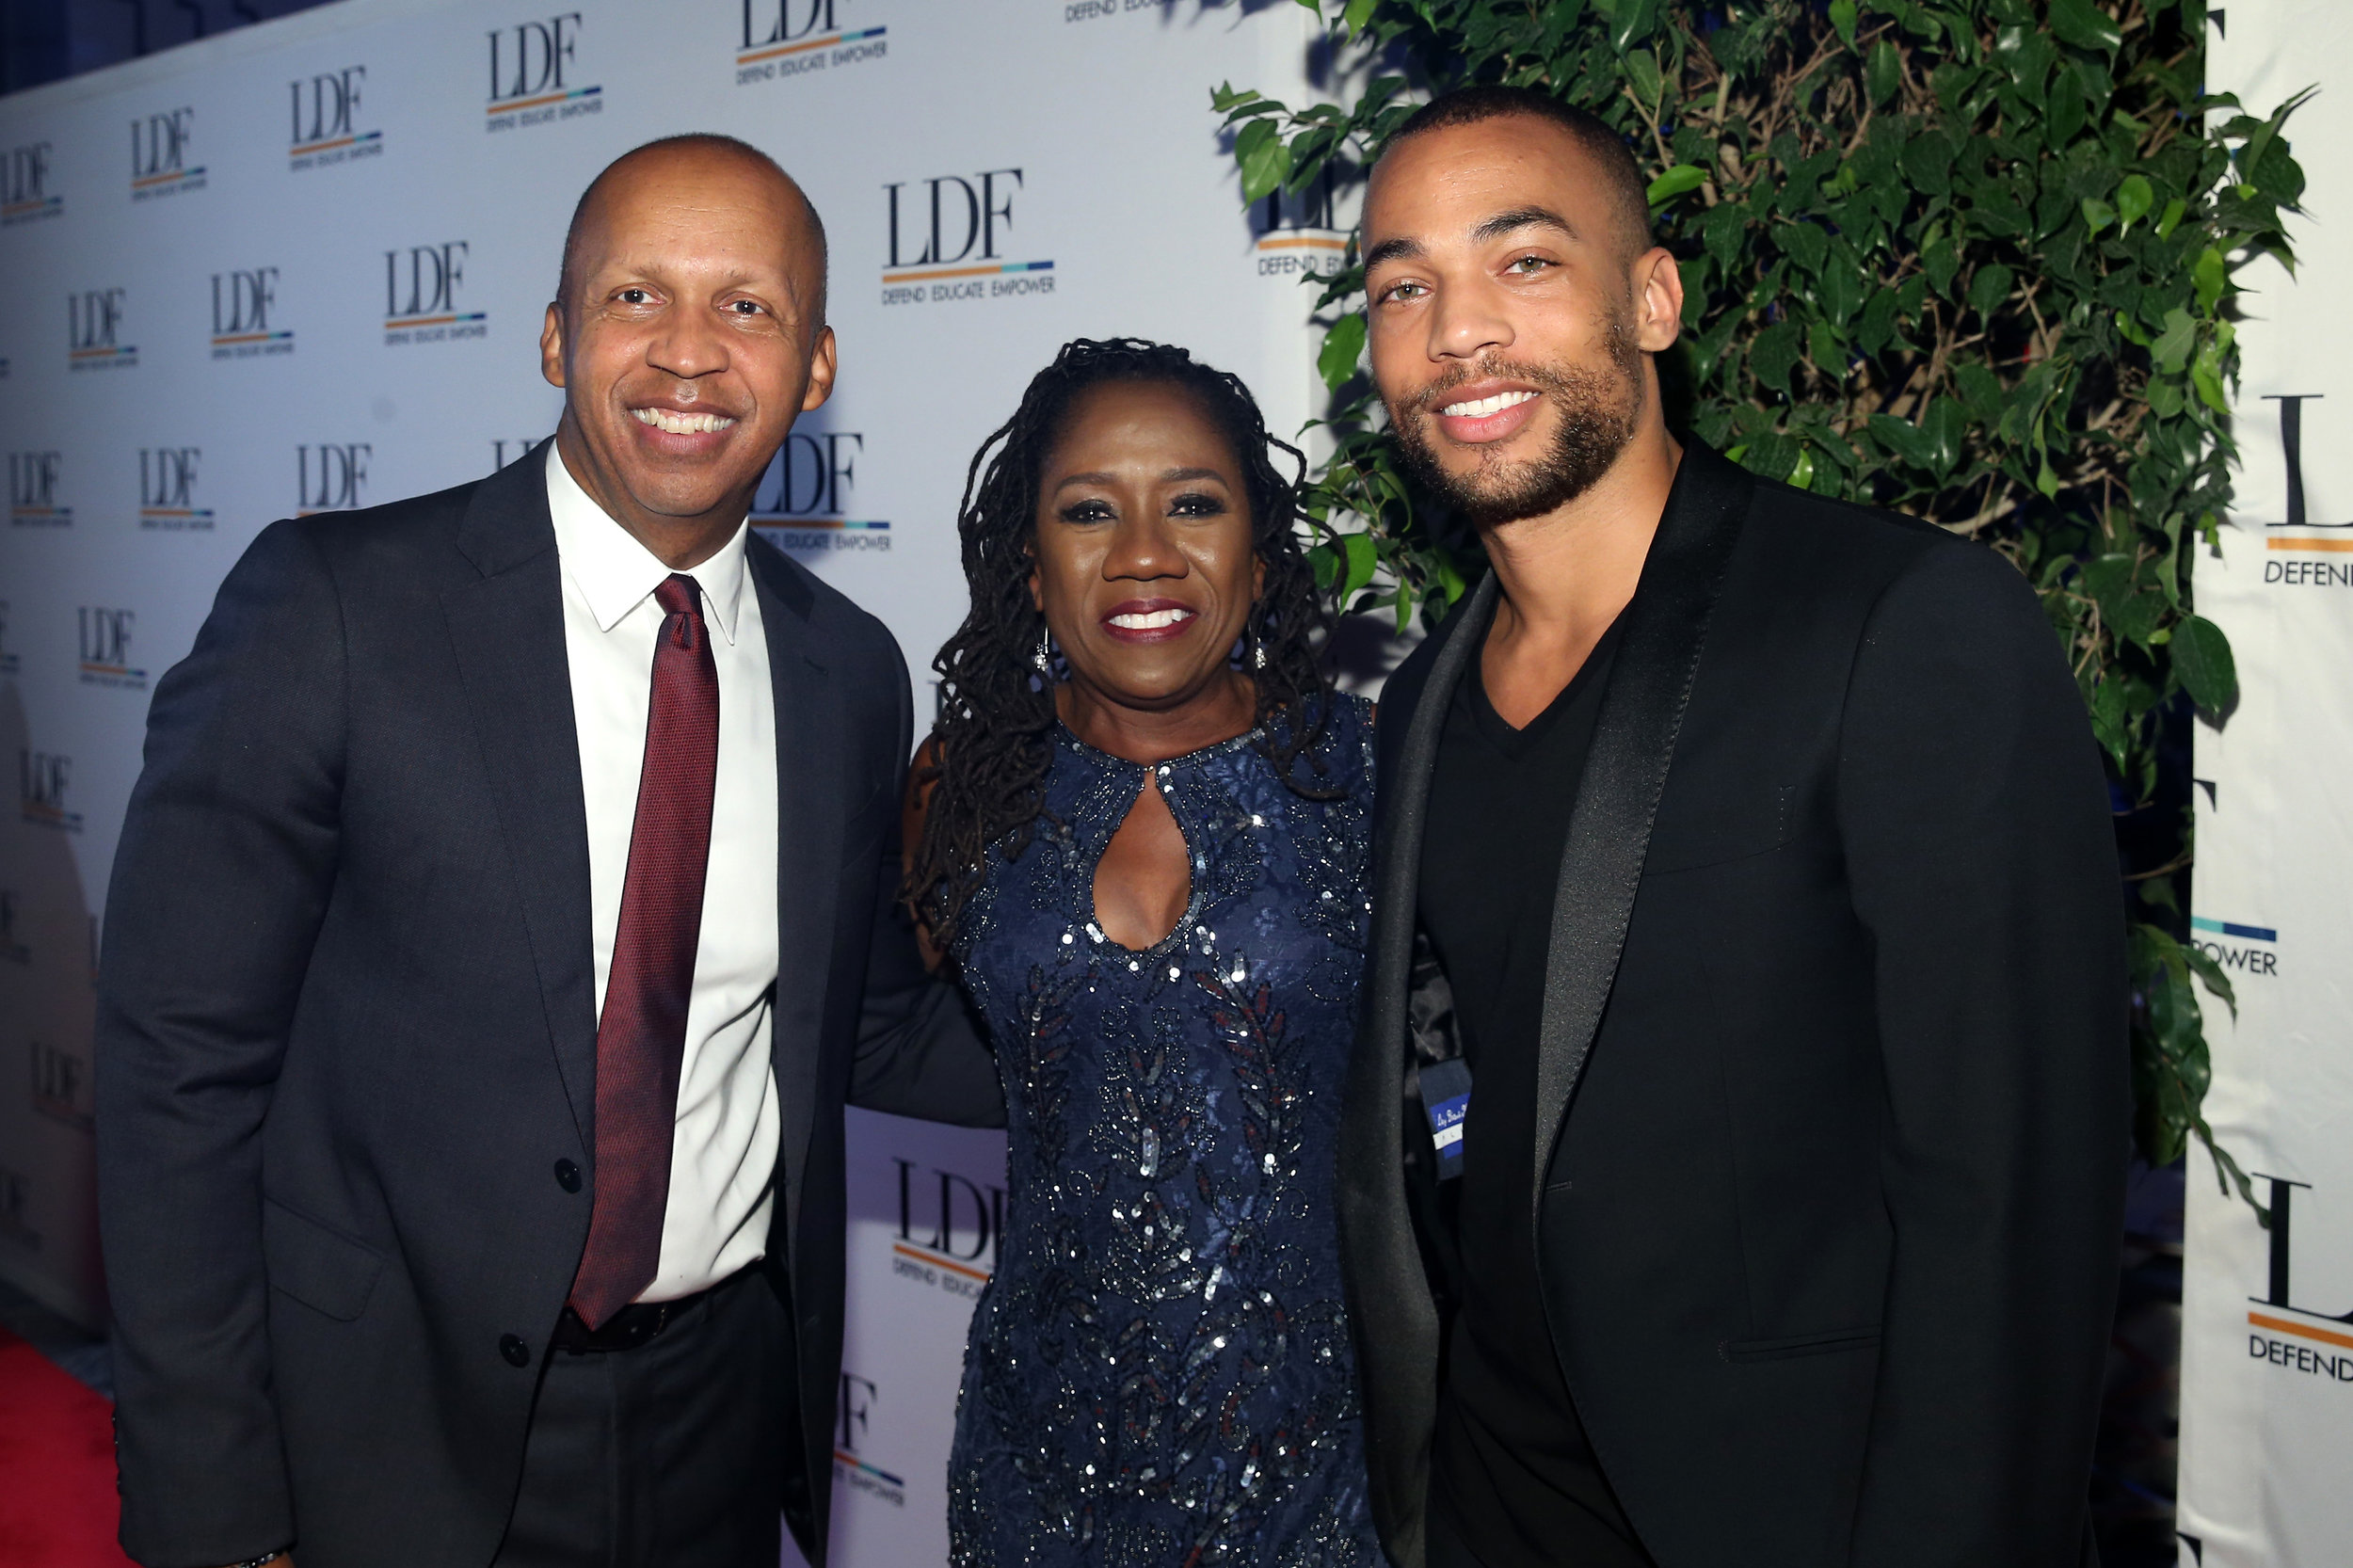 1056142172.jpg  Honoree Bryan Stevenson, LDF president Sherrilyn Ifill and Kendrick Sampson attend the NAACP LDF 32nd National Equal Justice Awards Dinner at The Ziegfeld Ballroom on November 1, 2018 in New York City.